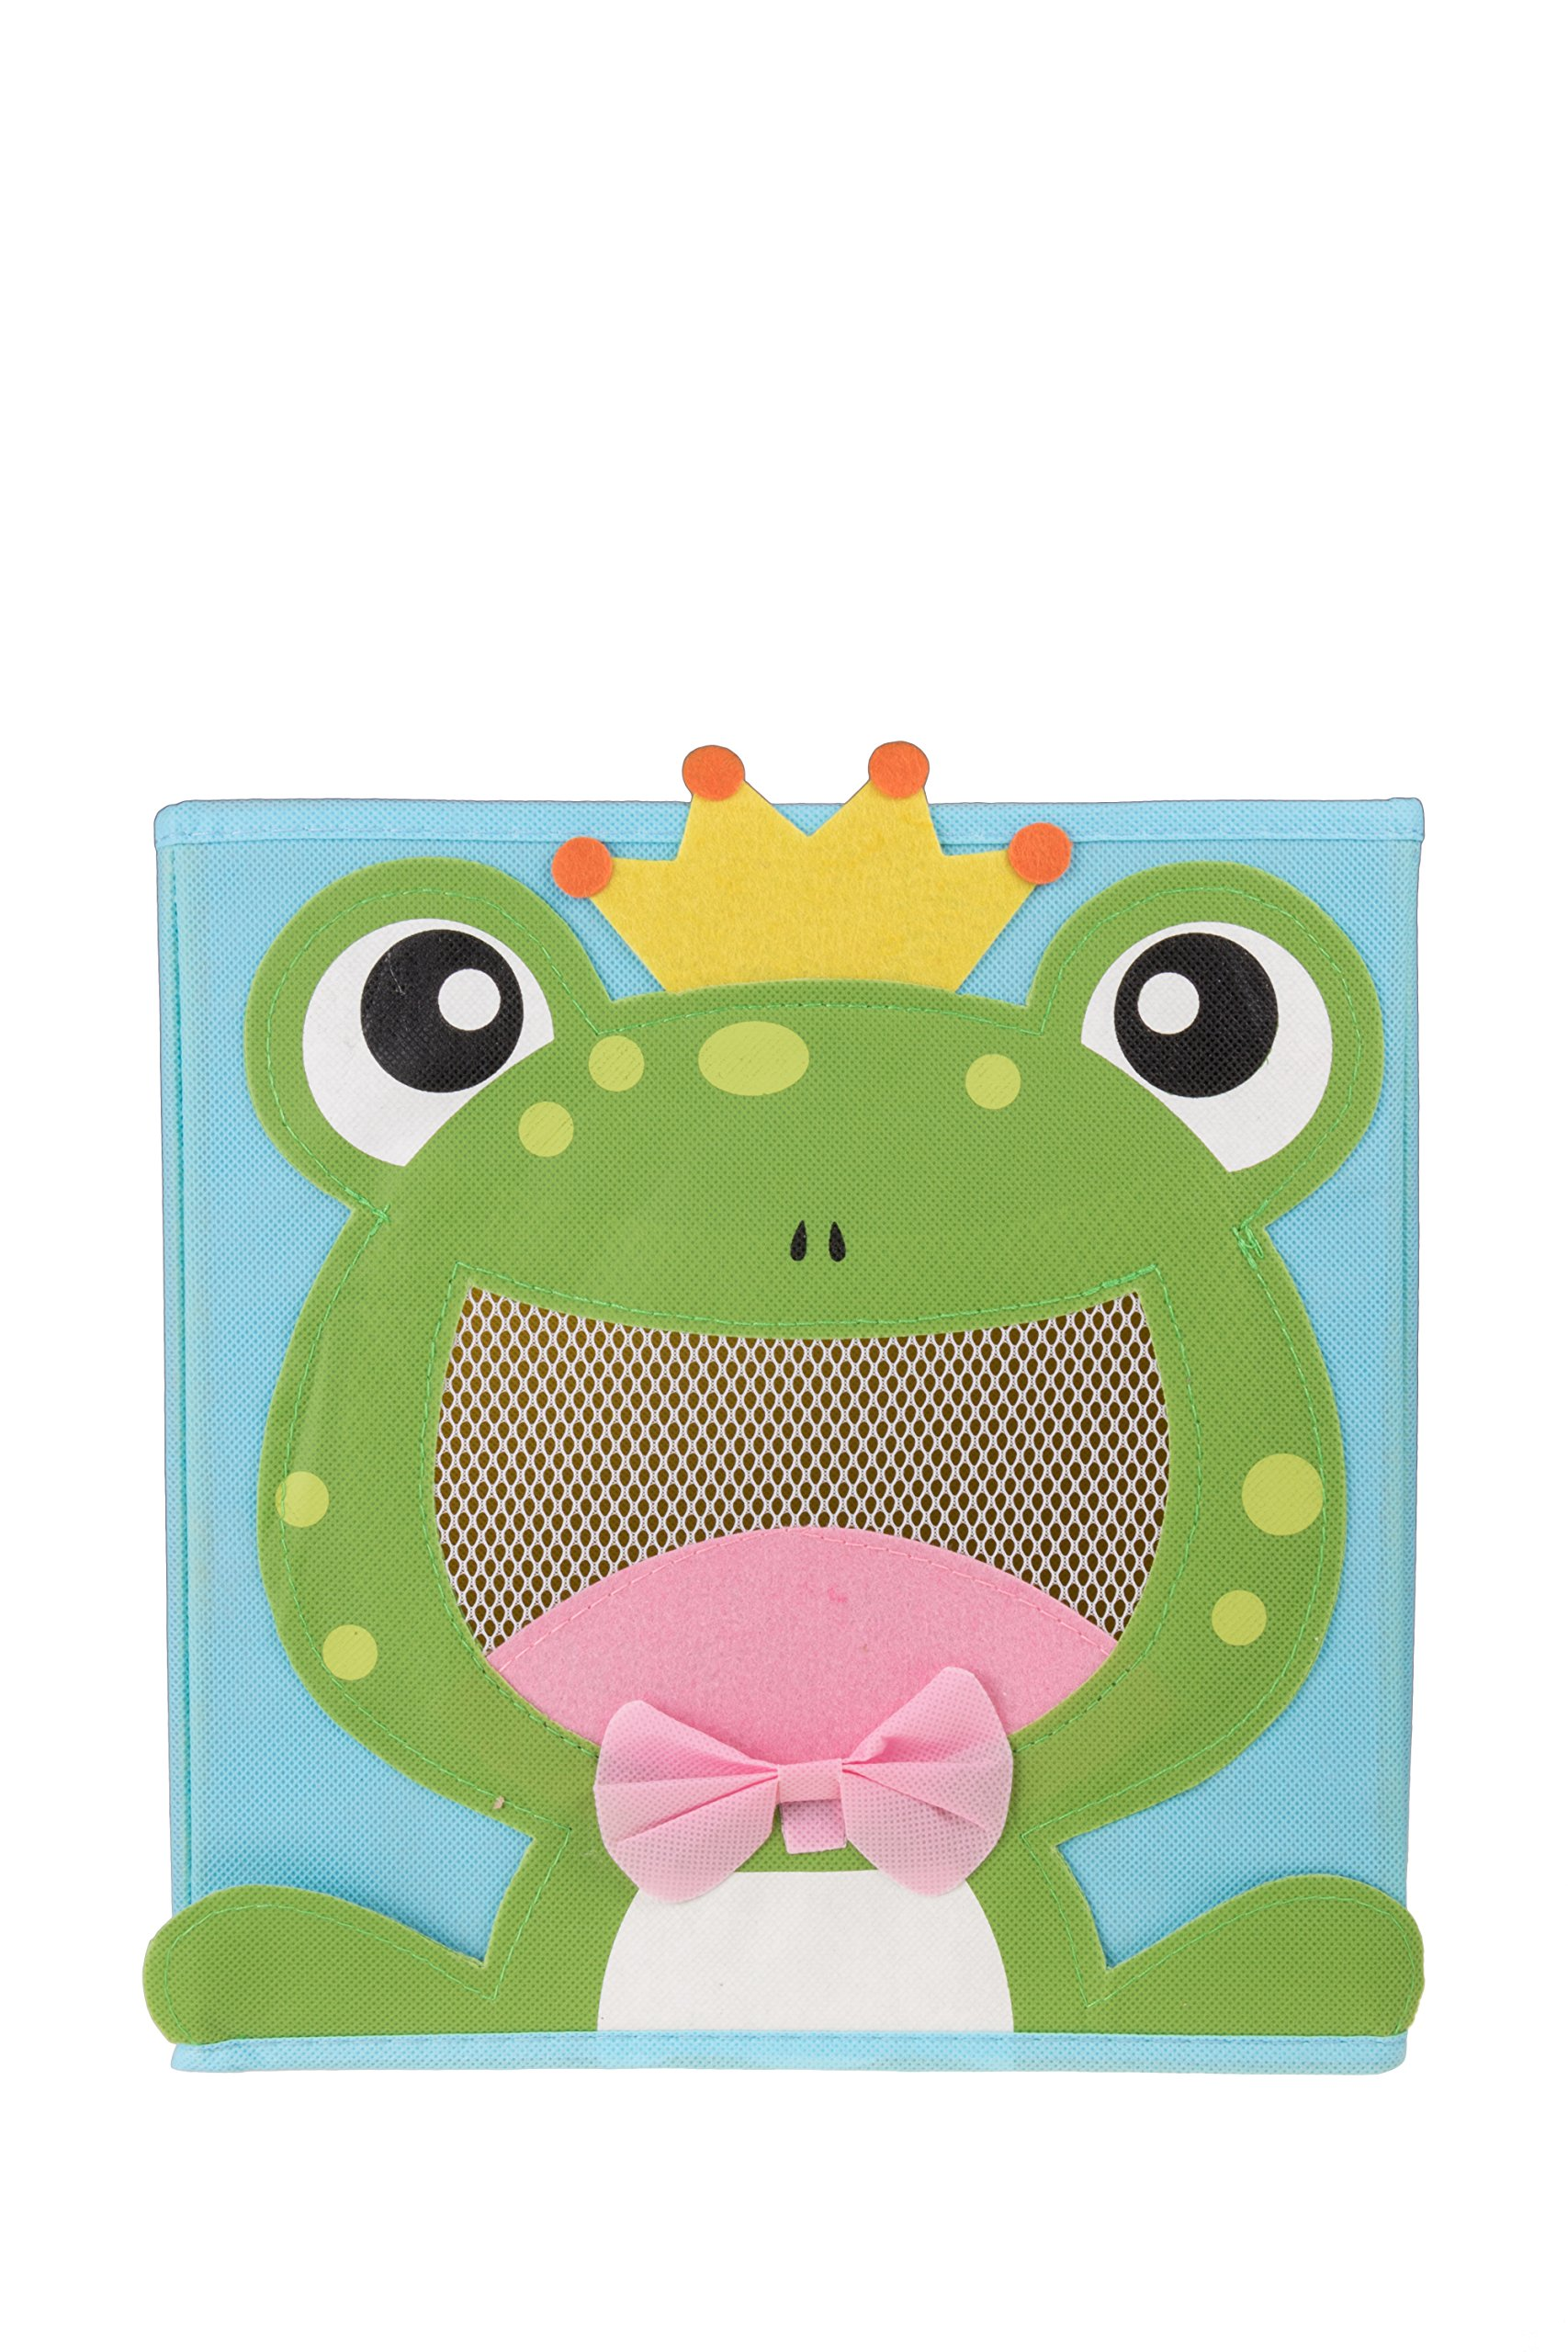 Clever Creations Cute Smiling Frog Collapsible Toy Storage Organizer Toy Box Folding Storage Cube Kids Bedroom | Perfect Size Storage Cube Books, Kids Toys, Baby Toys, Baby Clothes